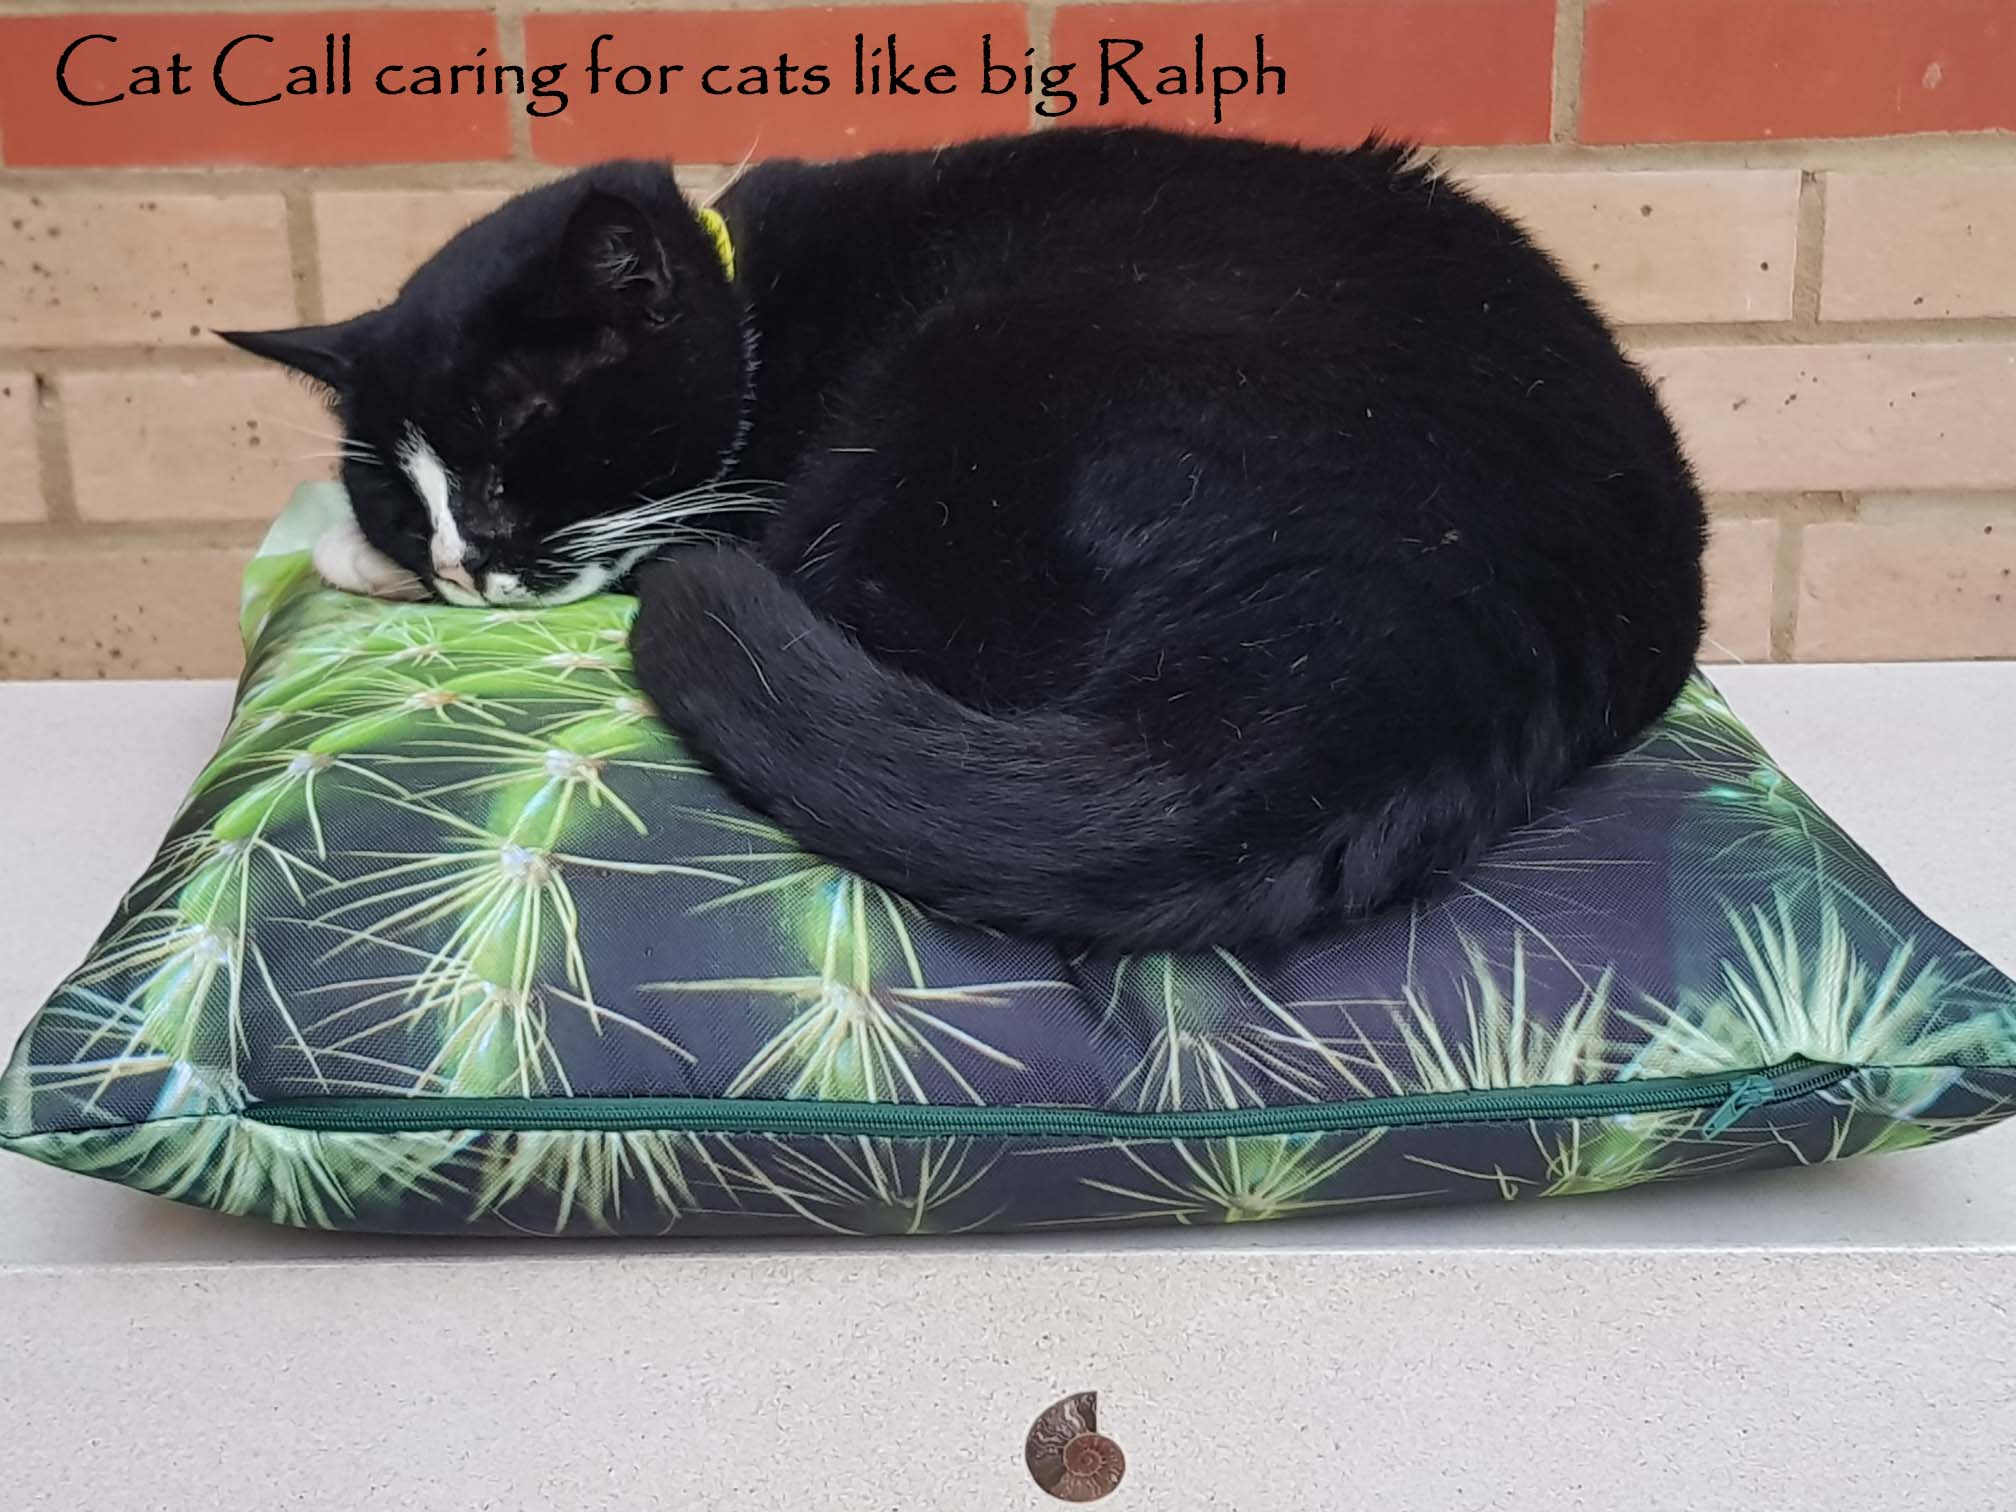 Cat Call caring for Cats like Big Ralph